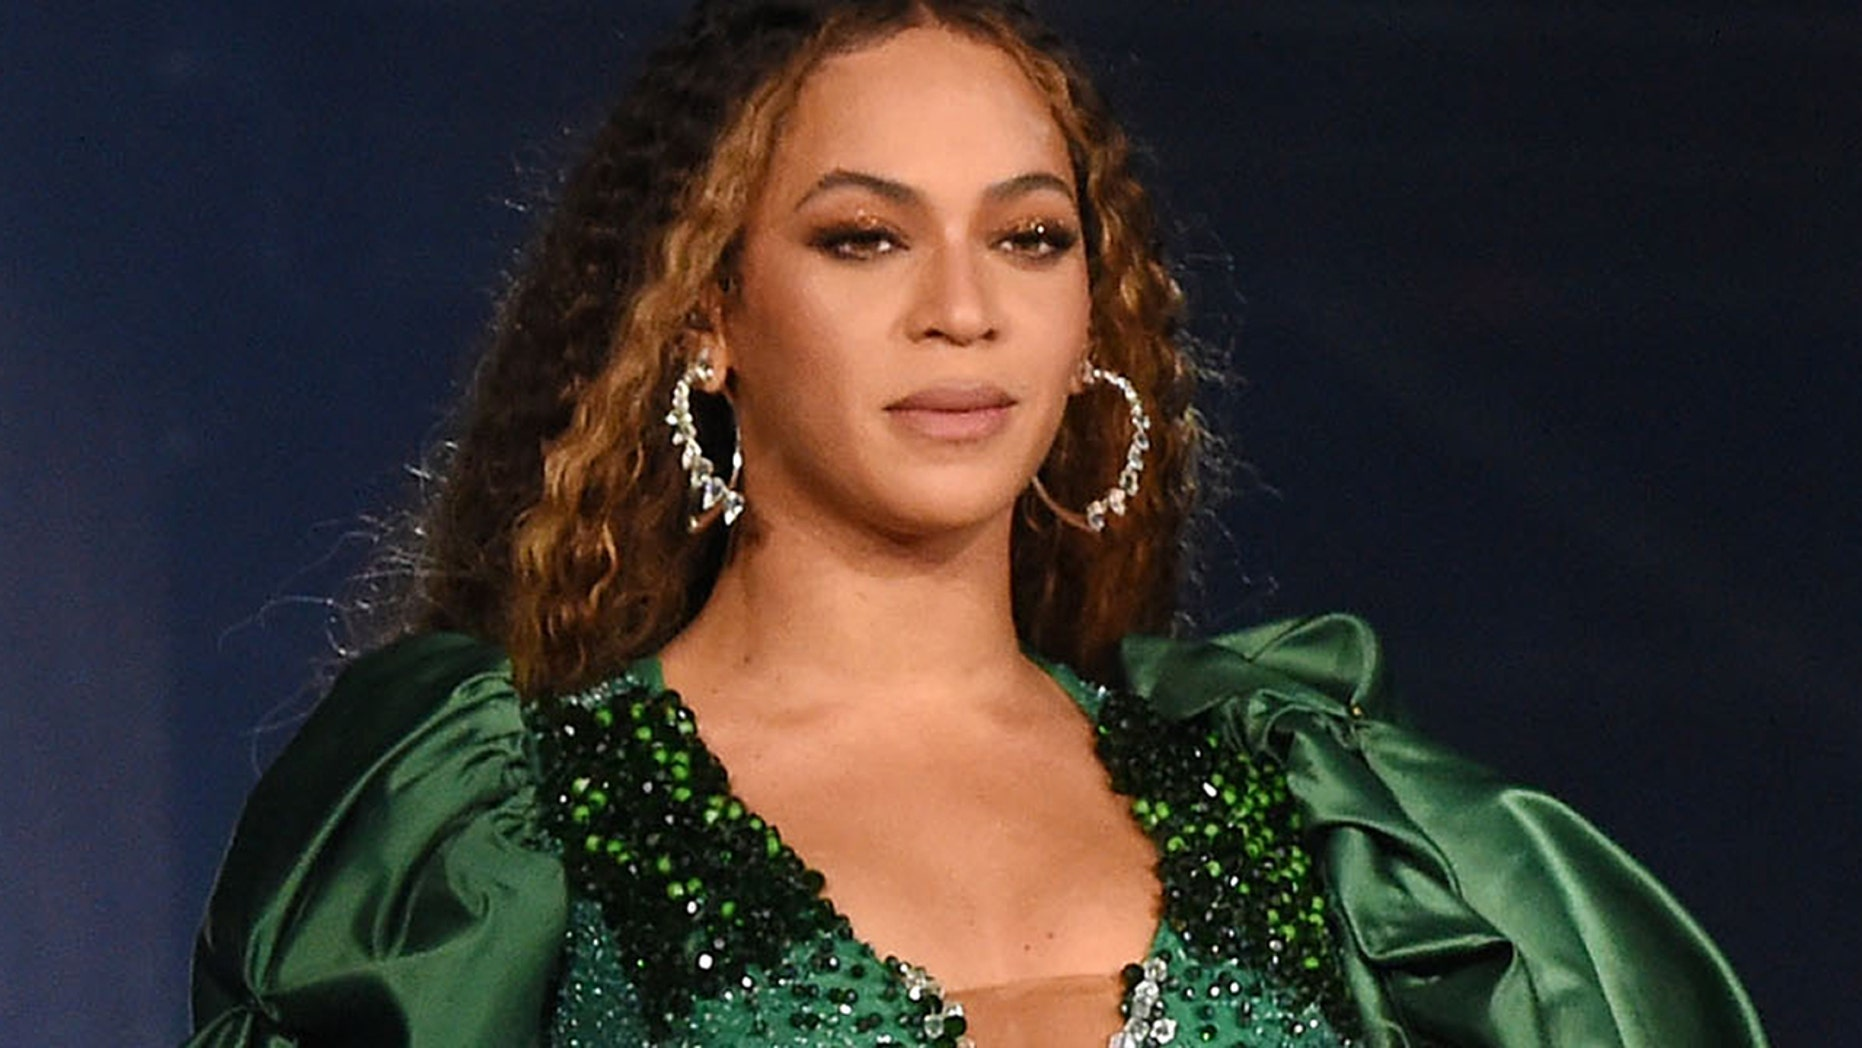 Beyonce tearfully dedicates GLAAD award to deceased uncle who lost battle with HIV